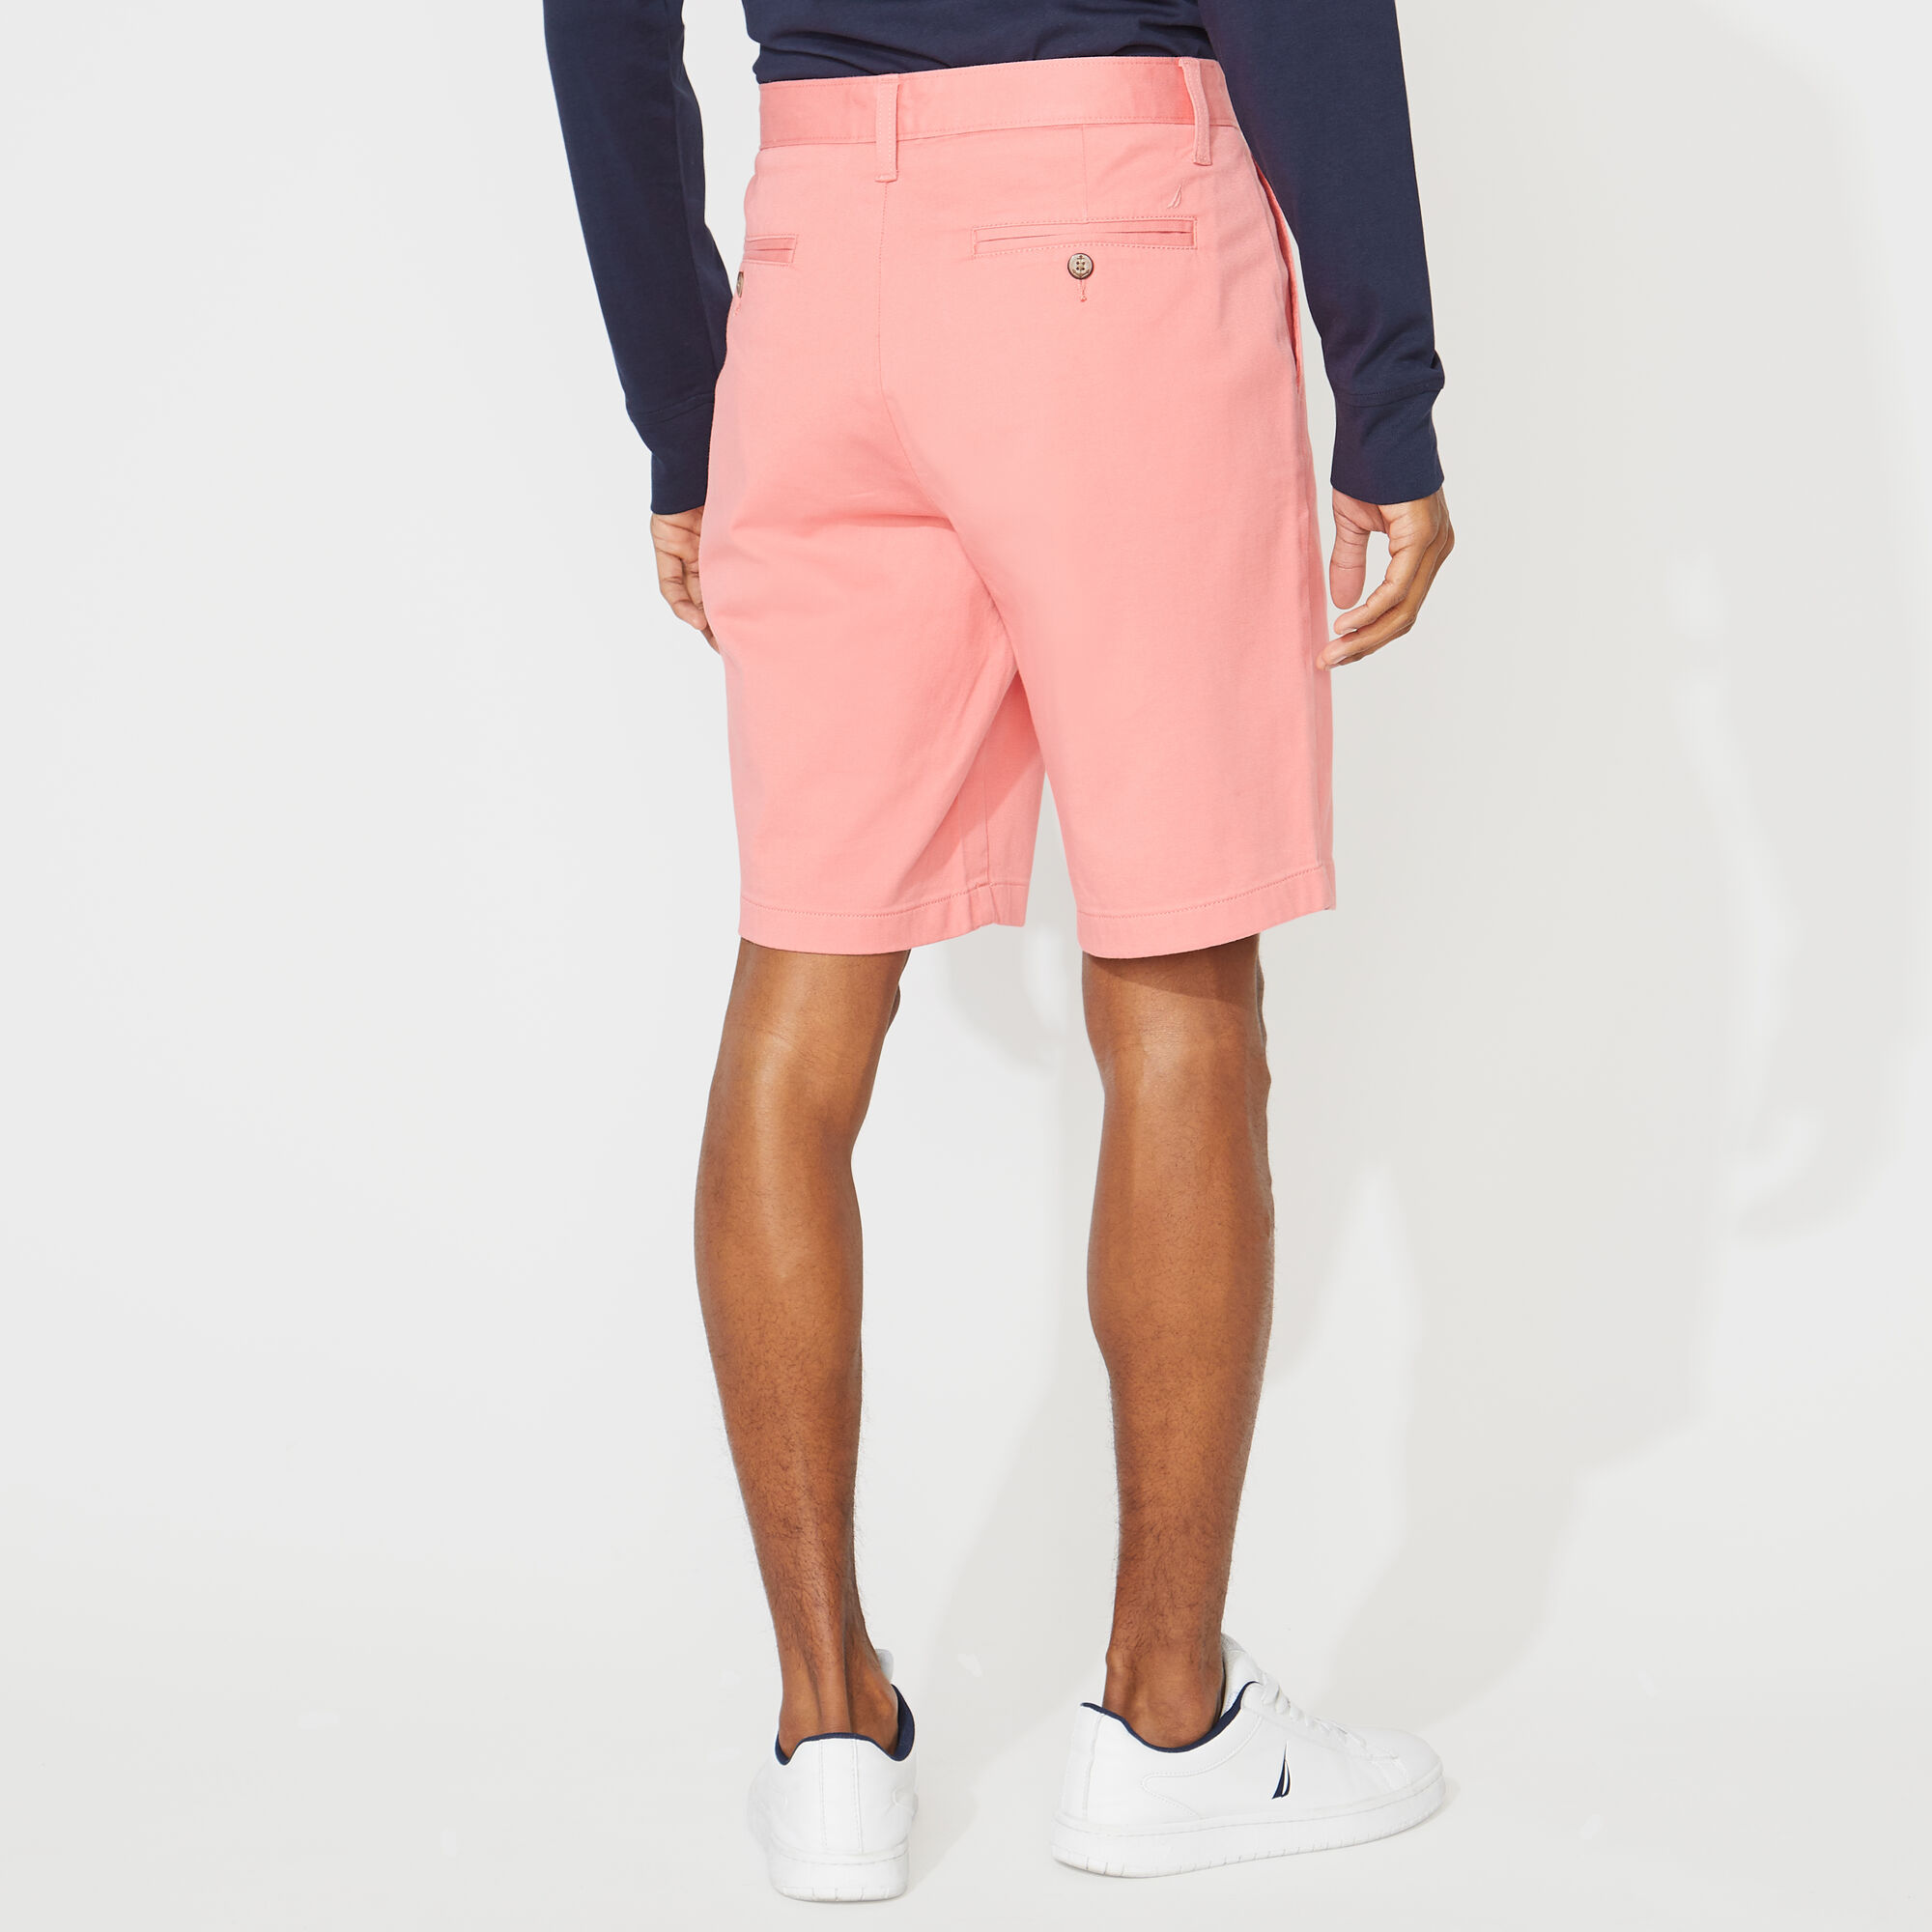 Nautica-Mens-10-034-Classic-Fit-Deck-Shorts-With-Stretch thumbnail 31